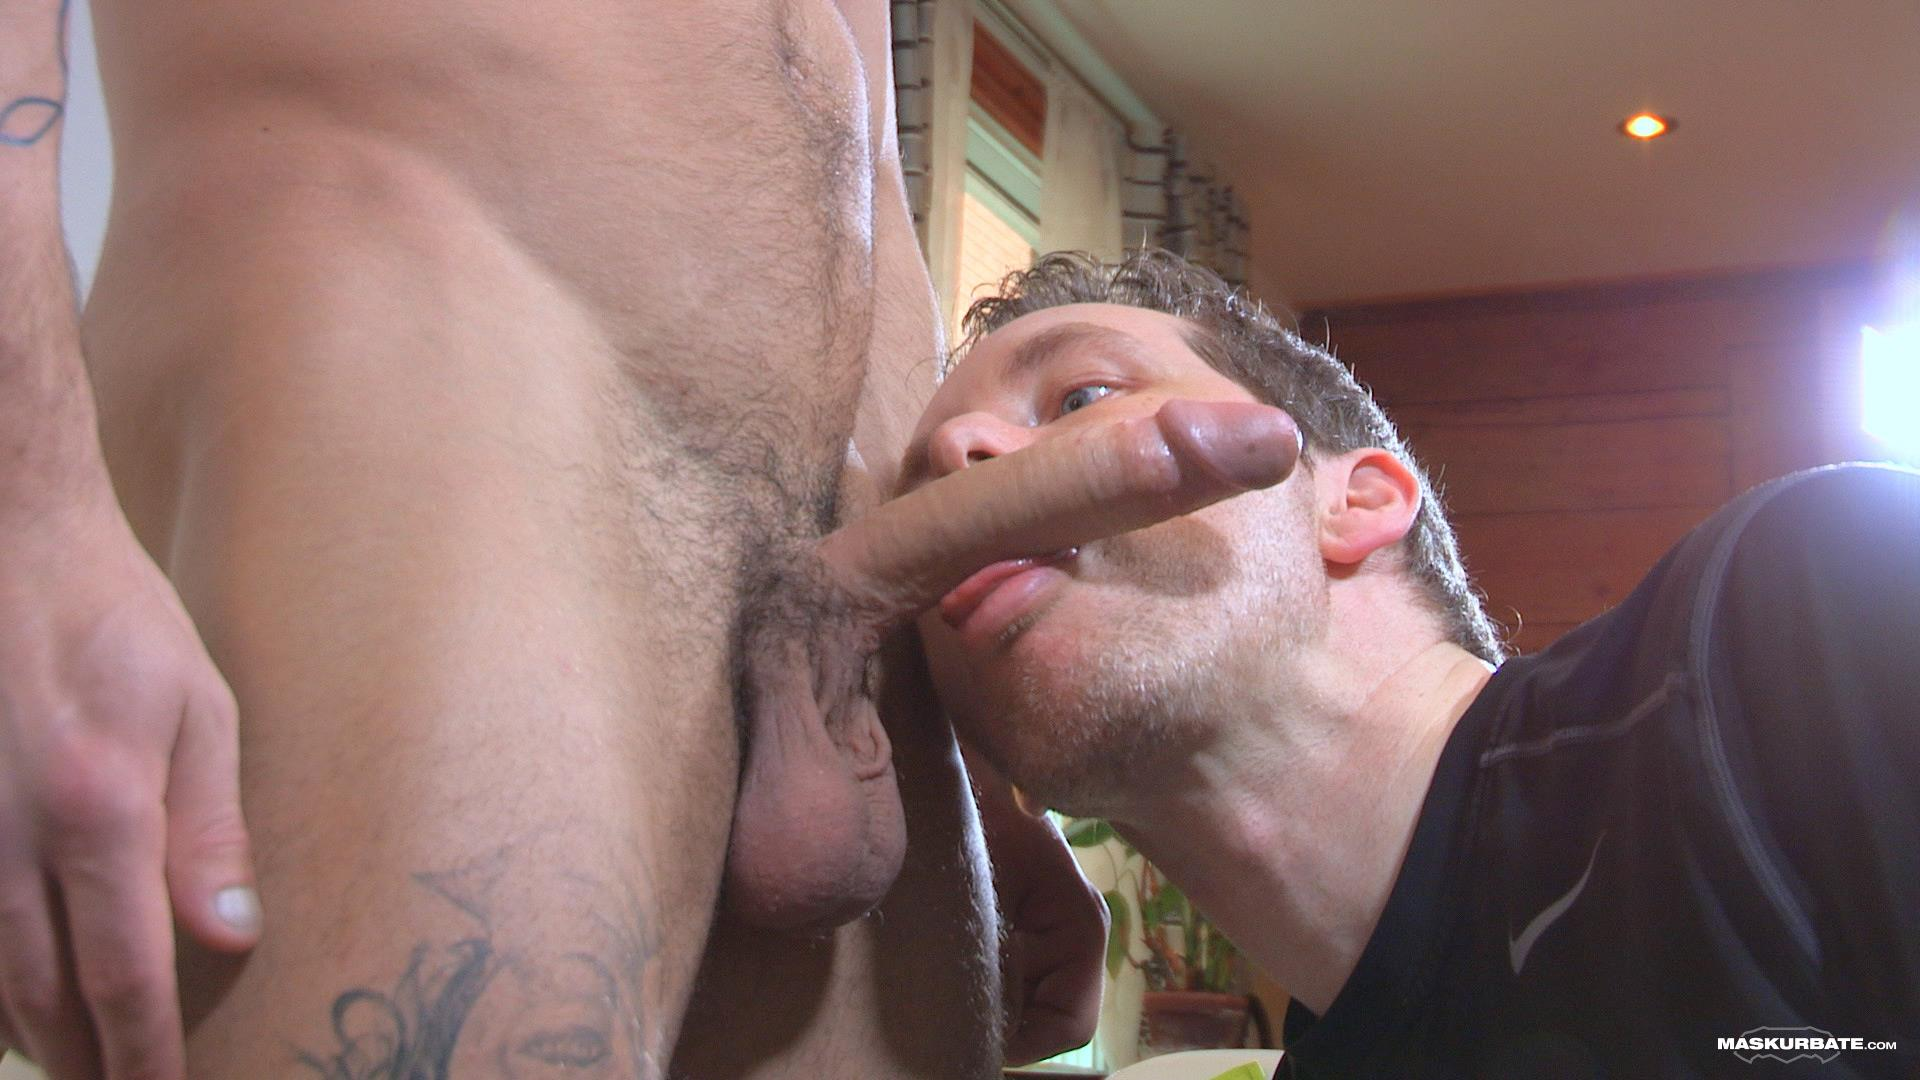 Maskurbate-Carl-Straight-Muscle-Jock-With-A-Big-Cock-Amateur-Gay-Porn-07 Straight Muscle Hunk Gets His First Blow Job From Another Guy